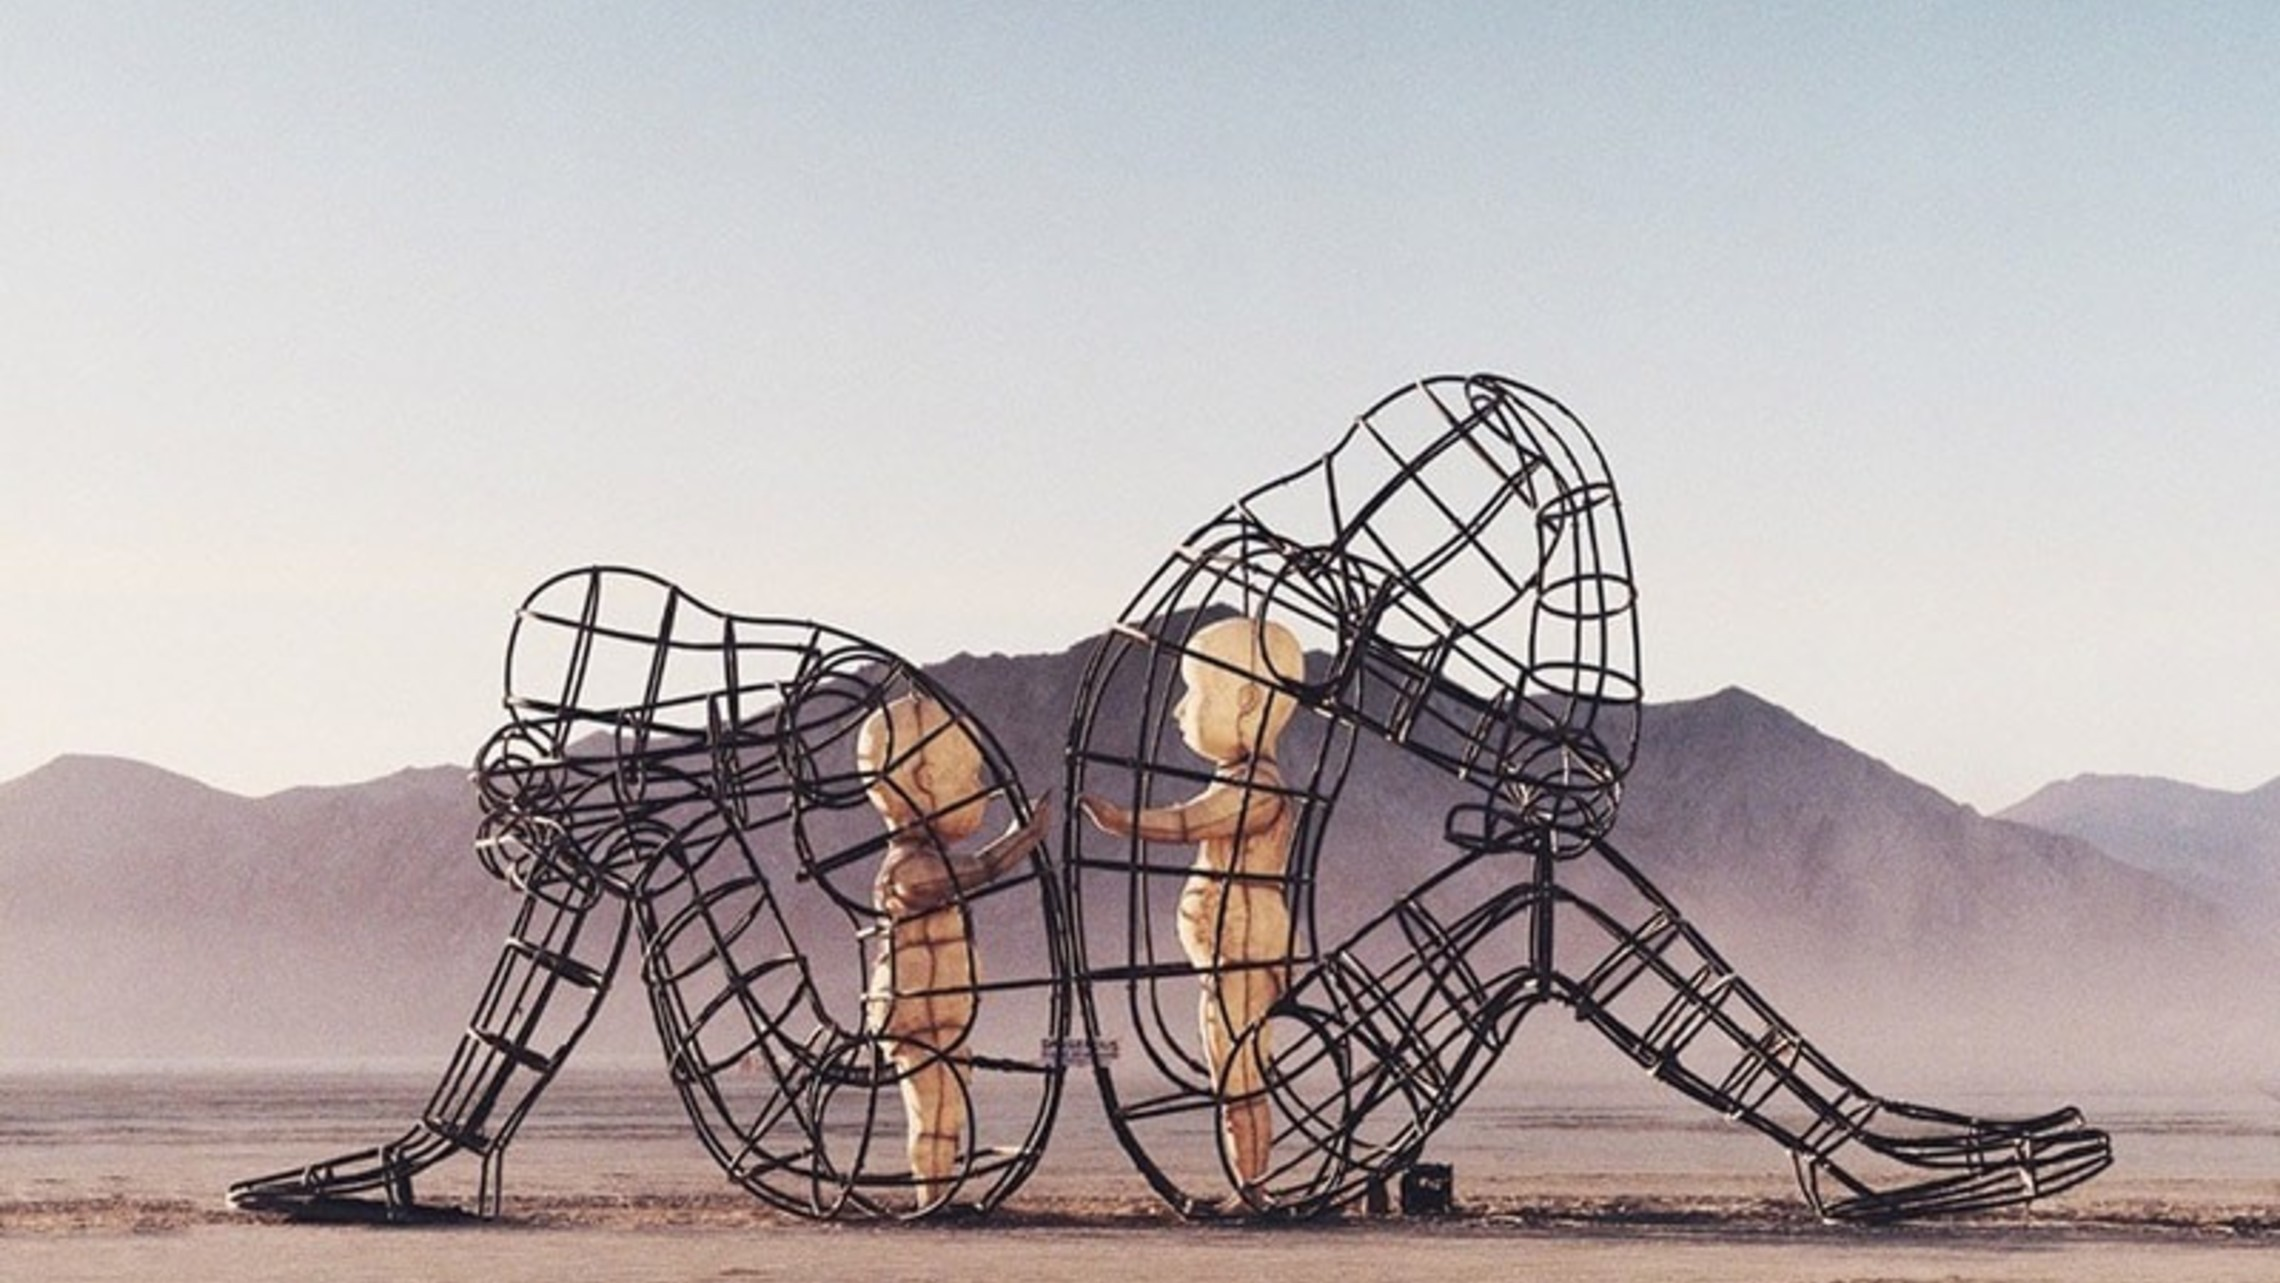 Burning Man Sculpture Inner Child Love Alexandr Milov2